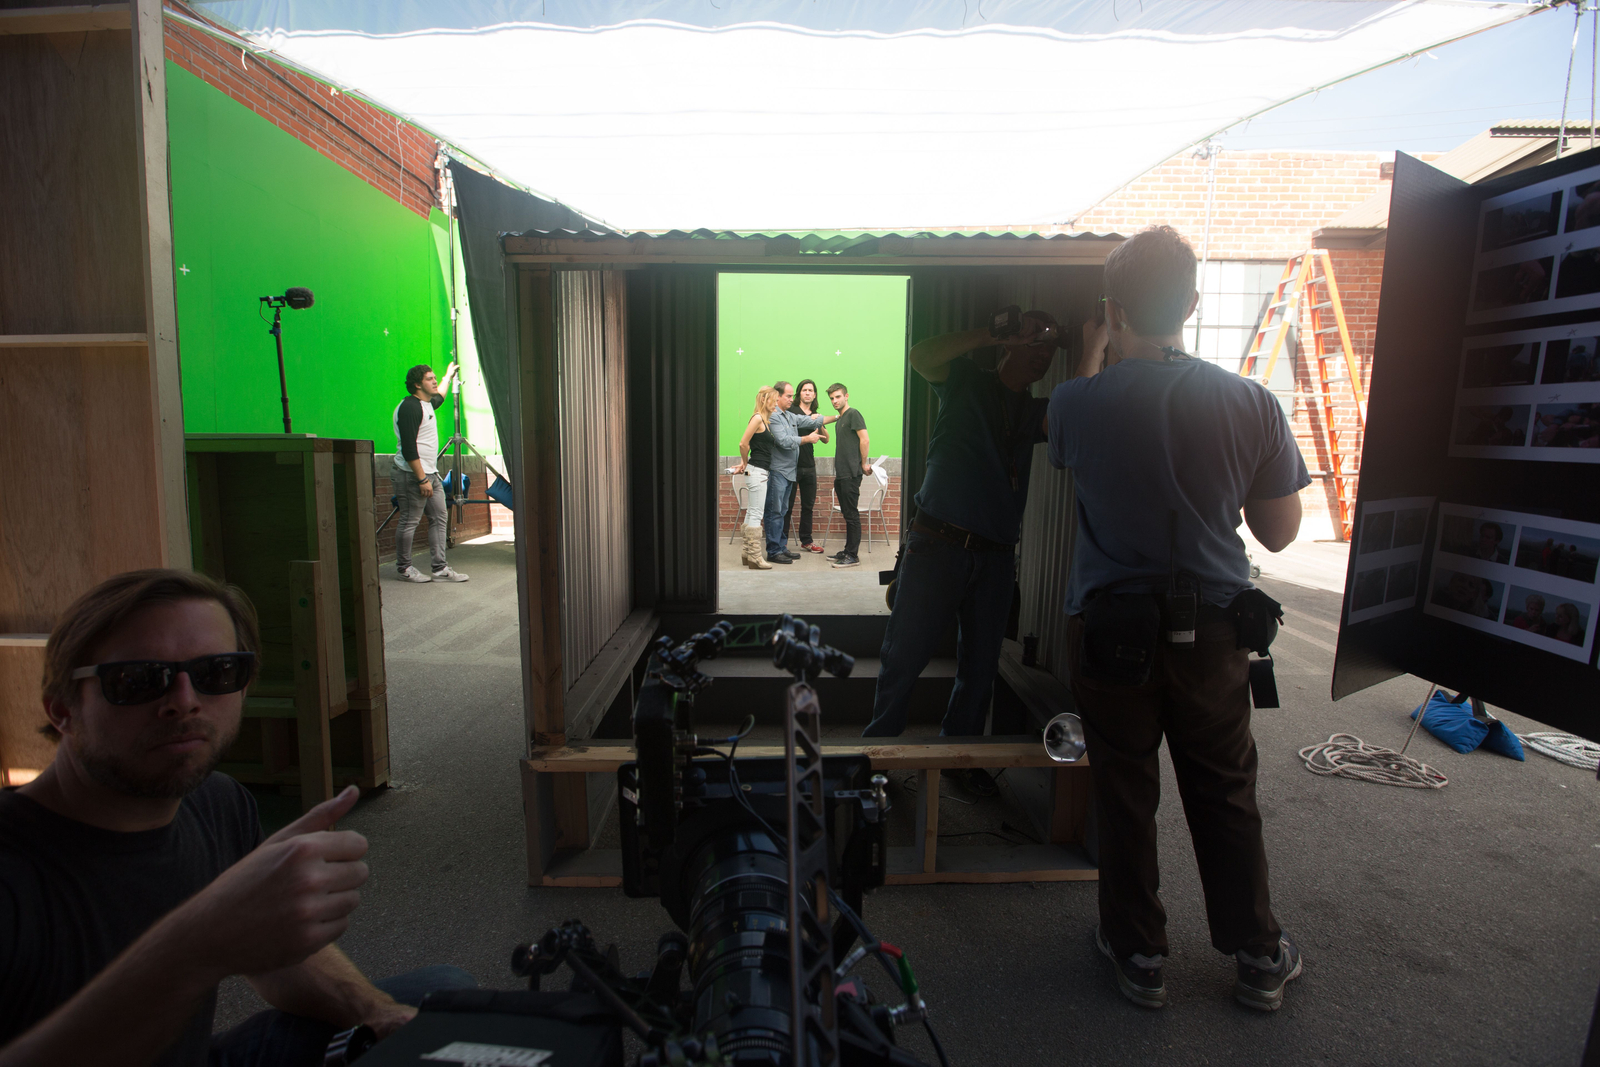 behind the scenes on the Disaster Artist